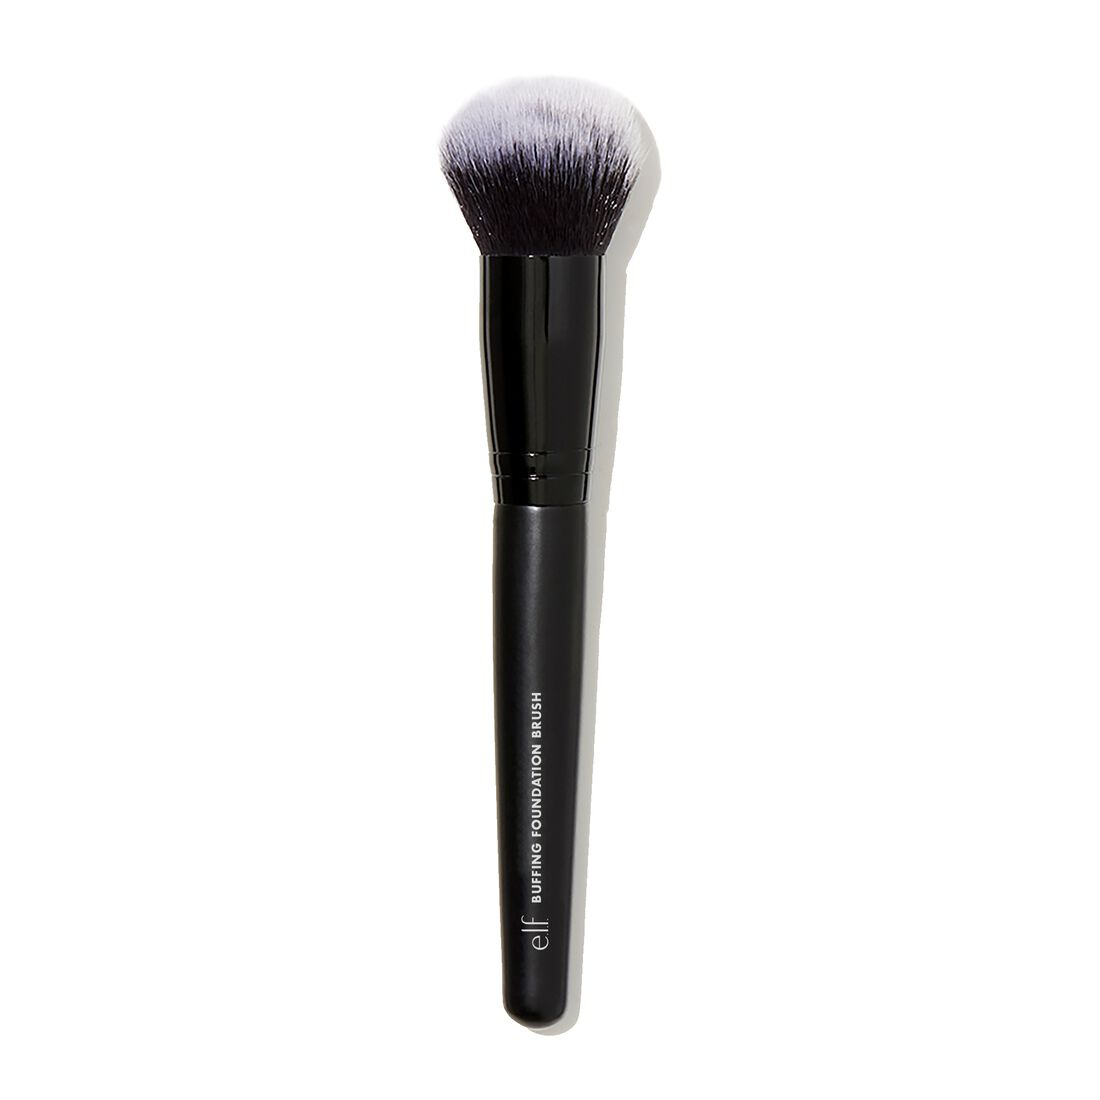 E.l.f Cosmetics - Buffing Foundation Brush